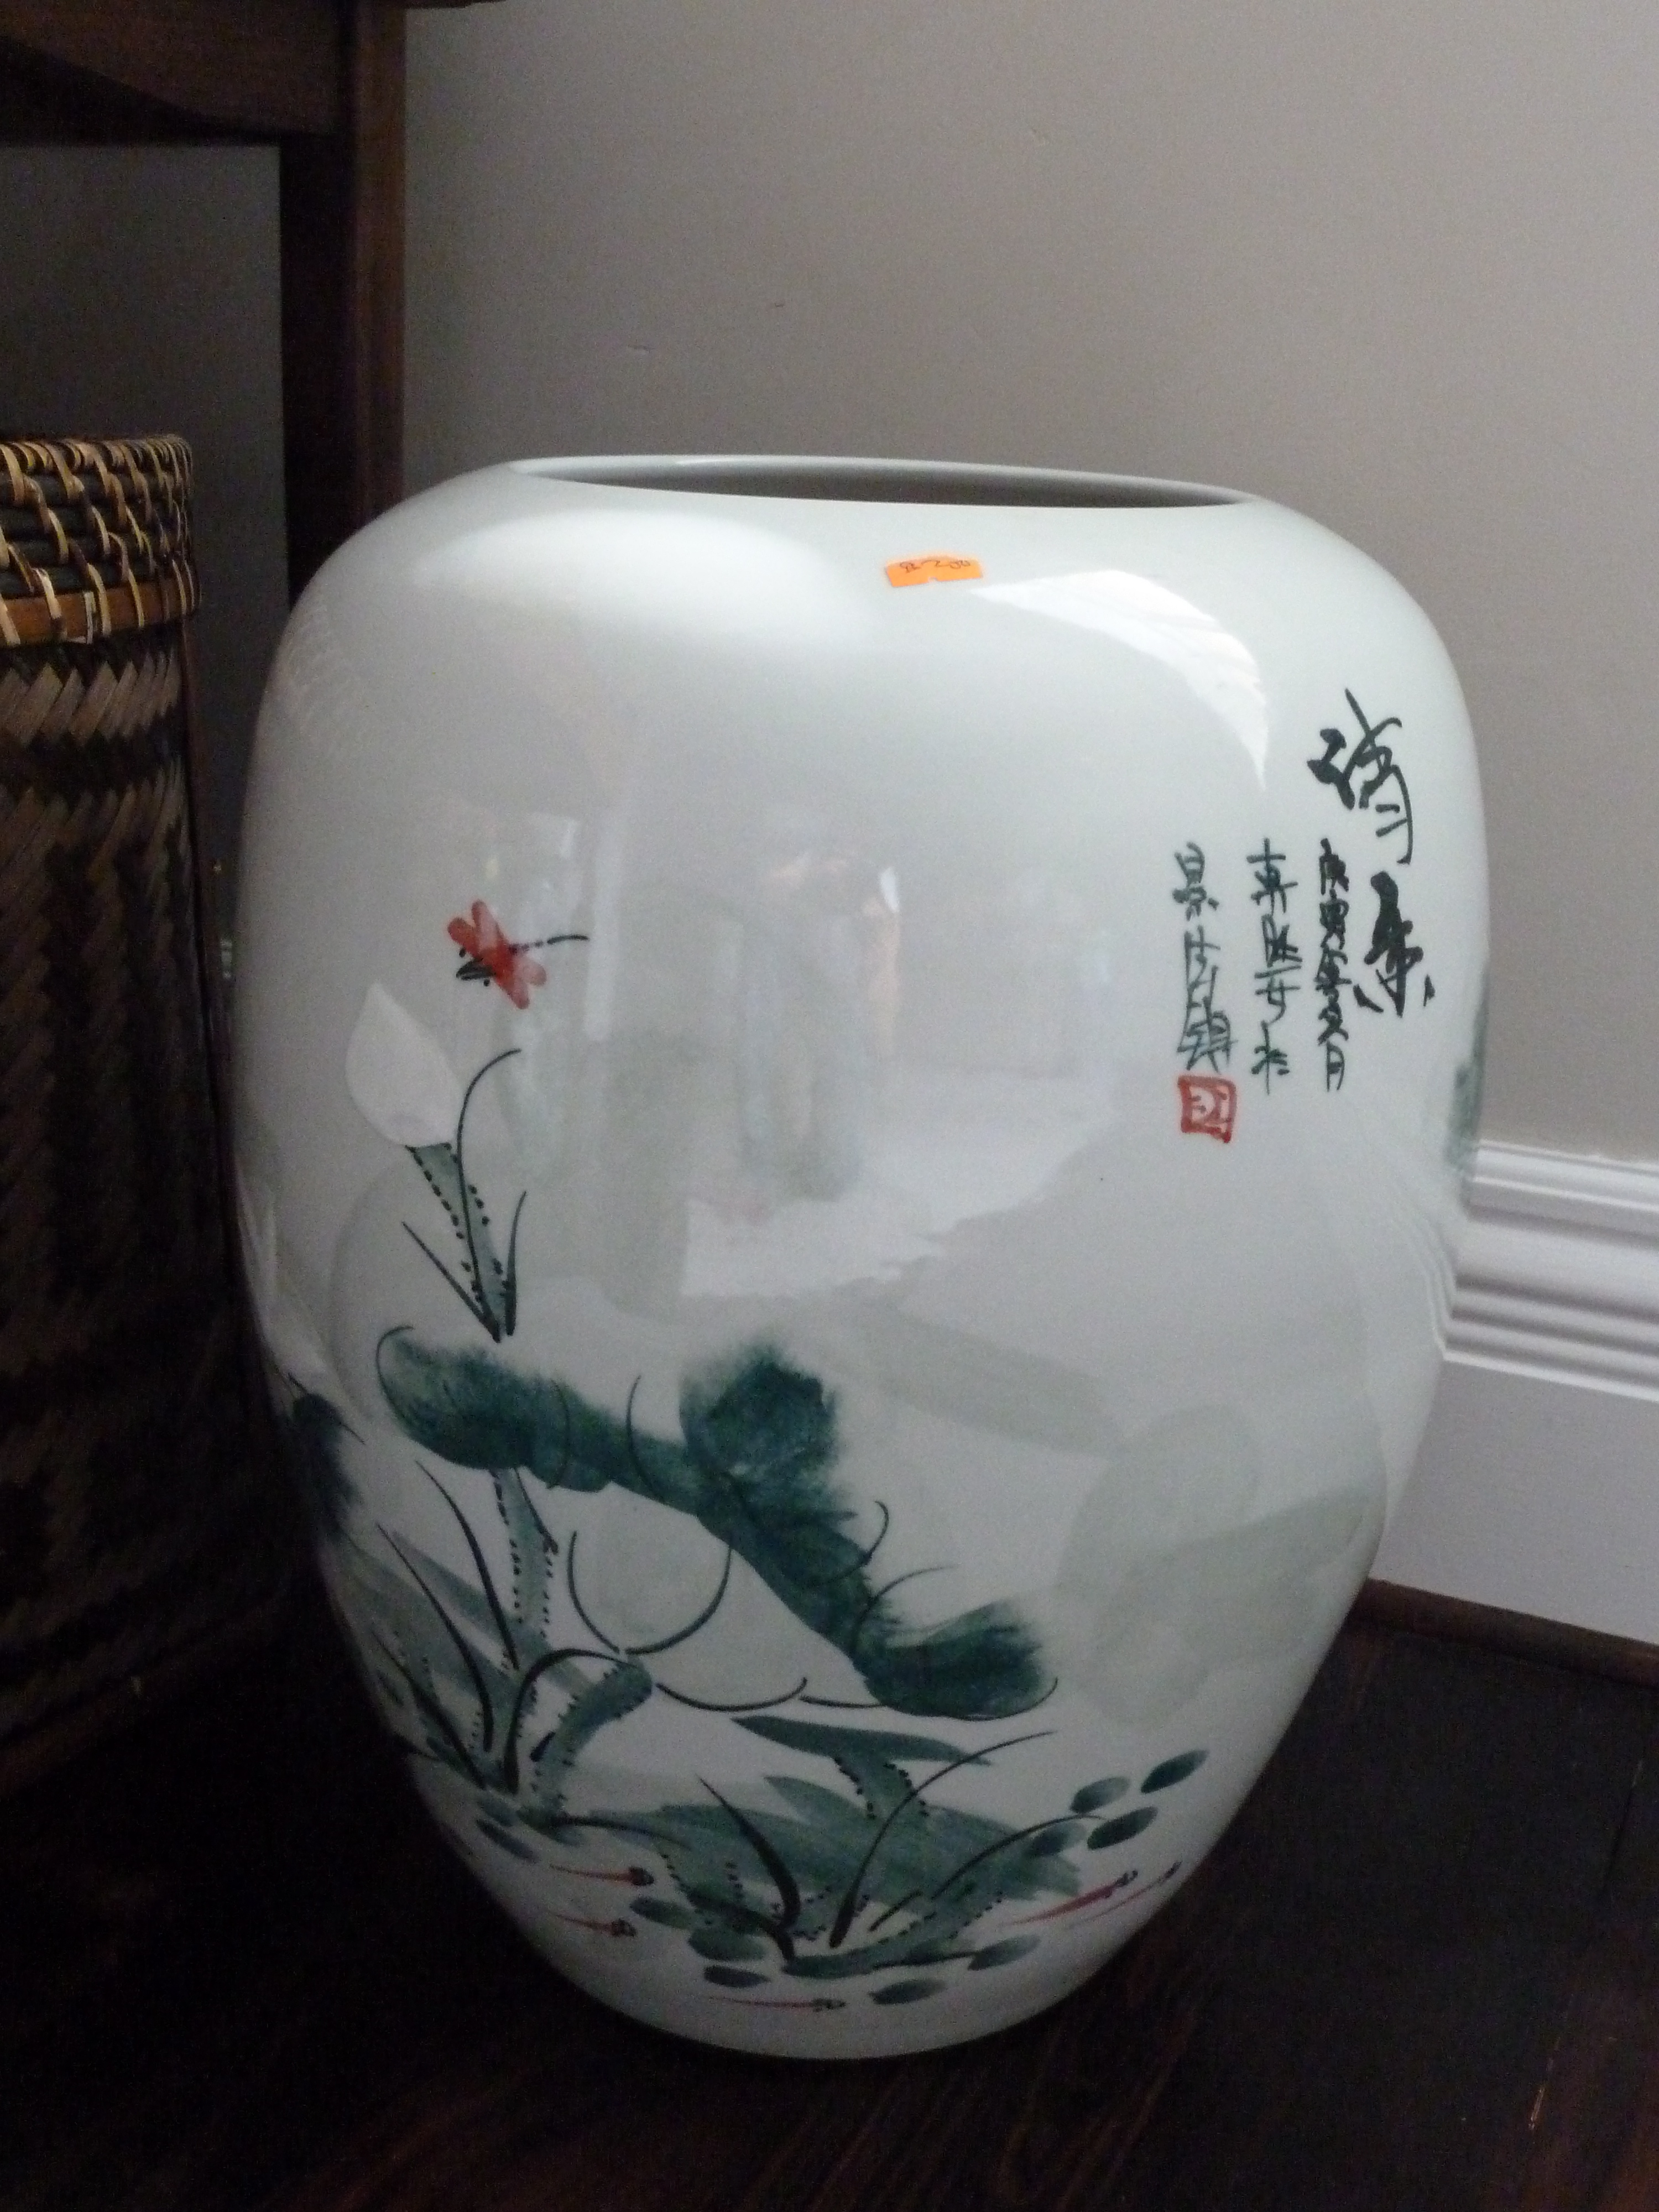 Porcelain Planters Ceramic Chinese Ceramic Pots Oriental Meets English Country